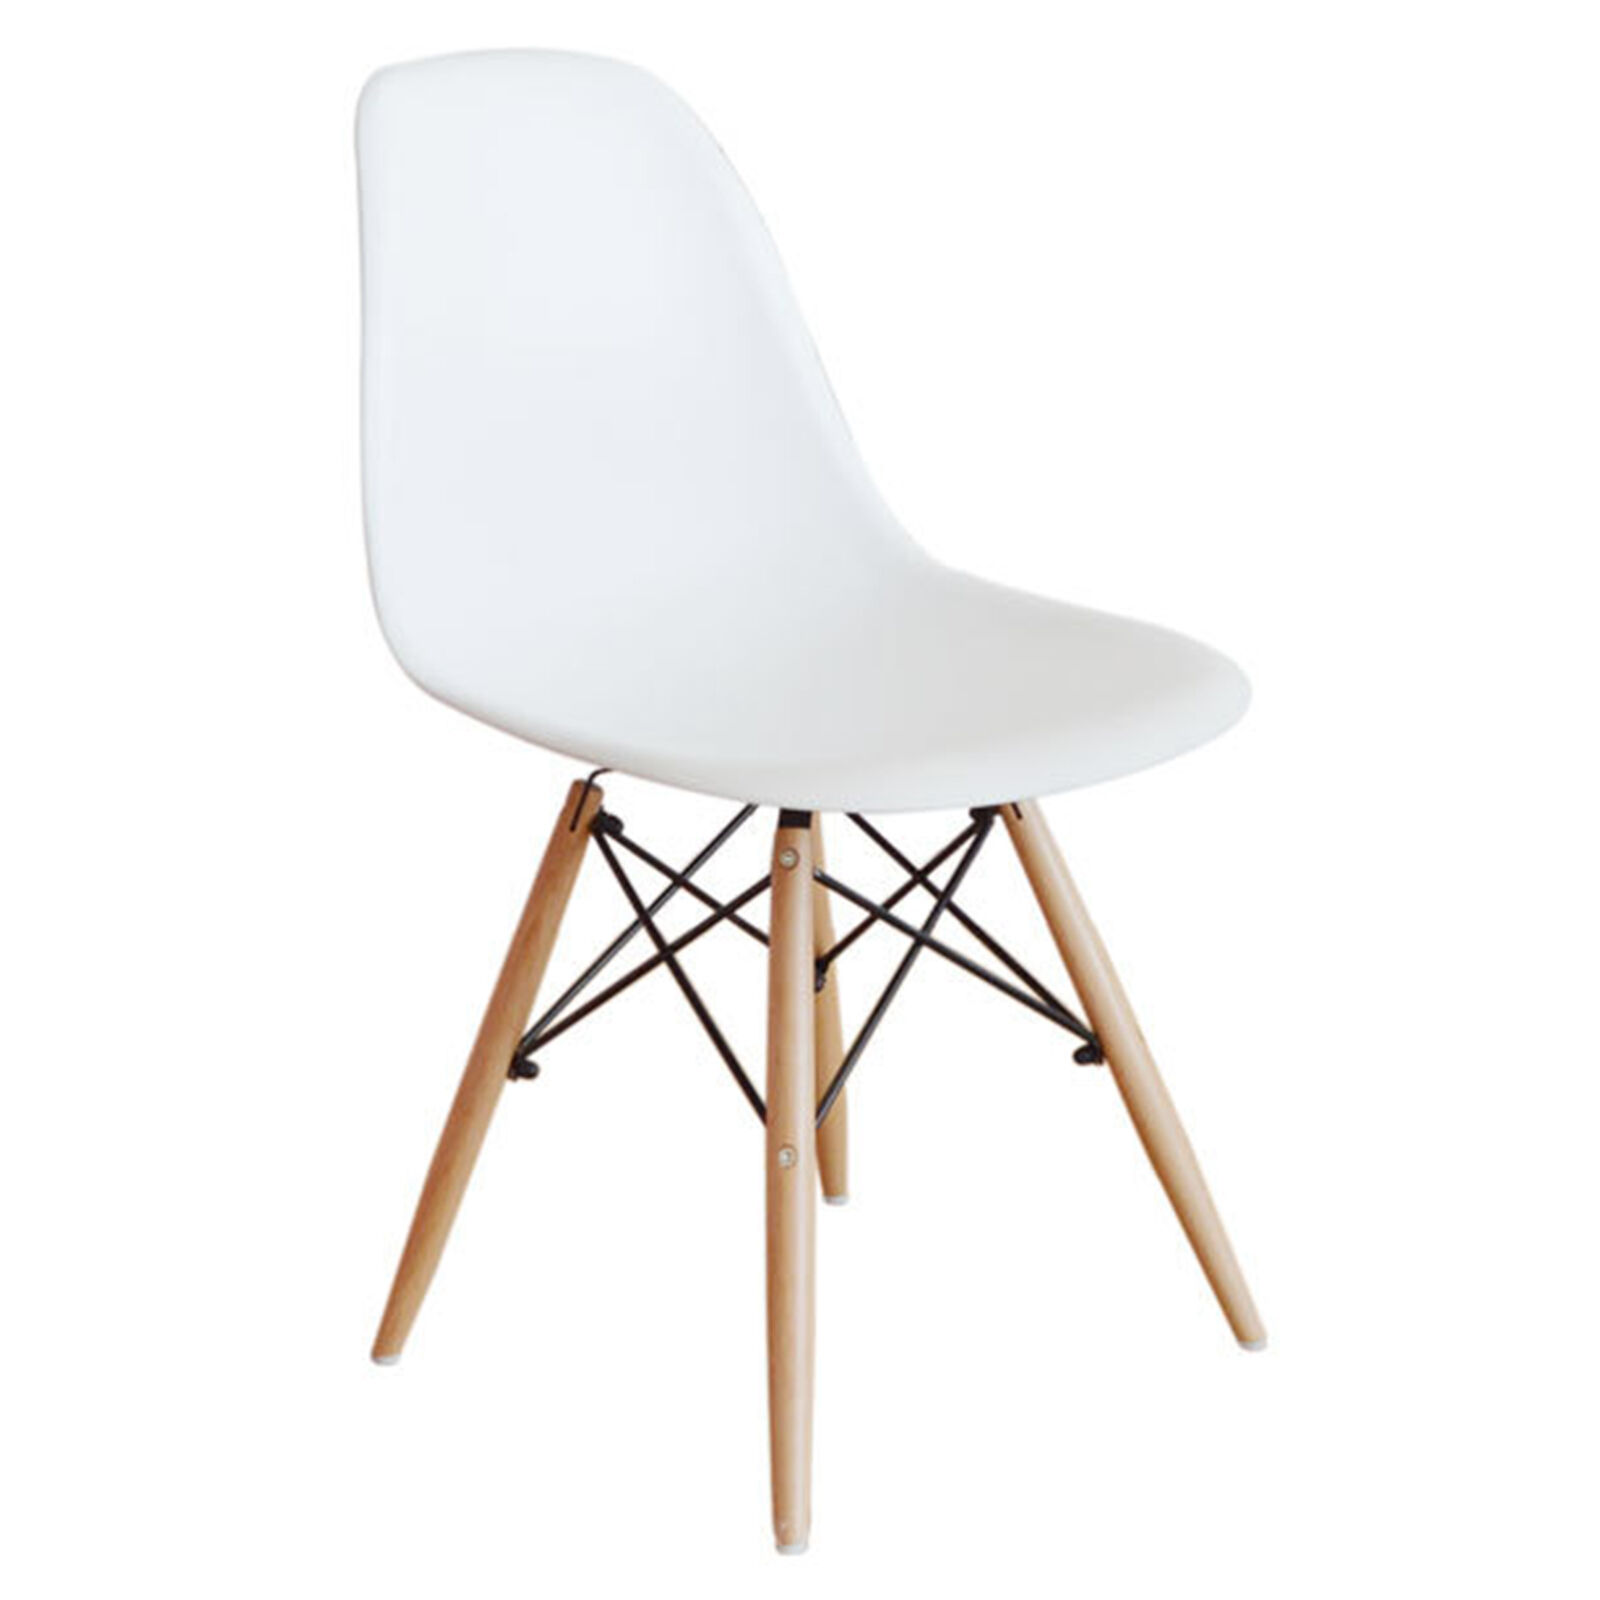 White Wood Chair White Eiffel Chair With Wood Legs At Home